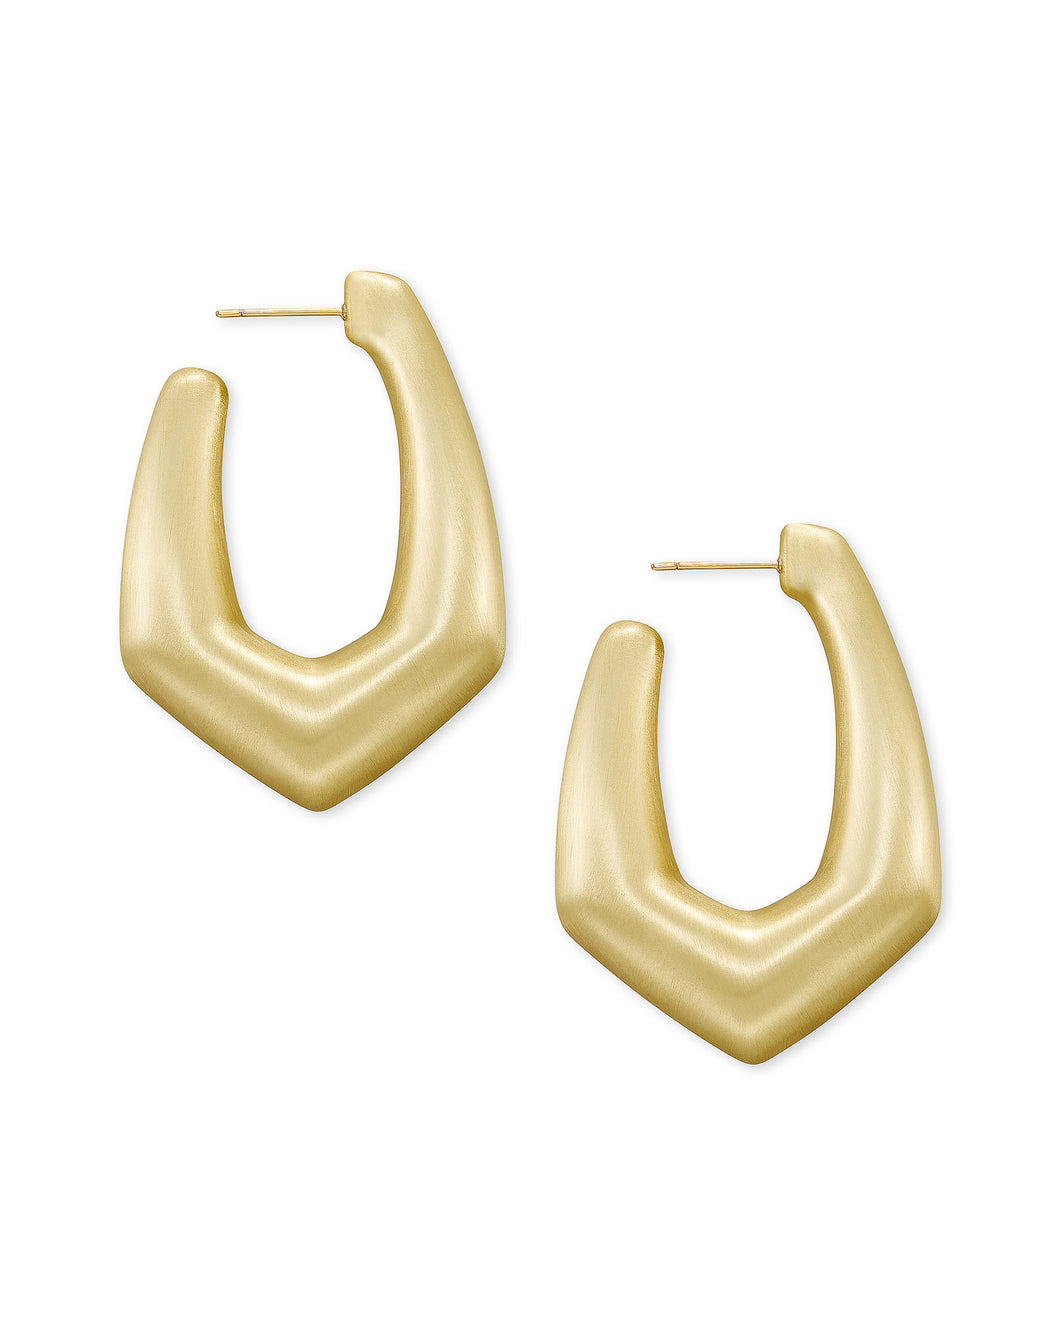 Kendra Scott Kaia Hoop Earrings in Gold